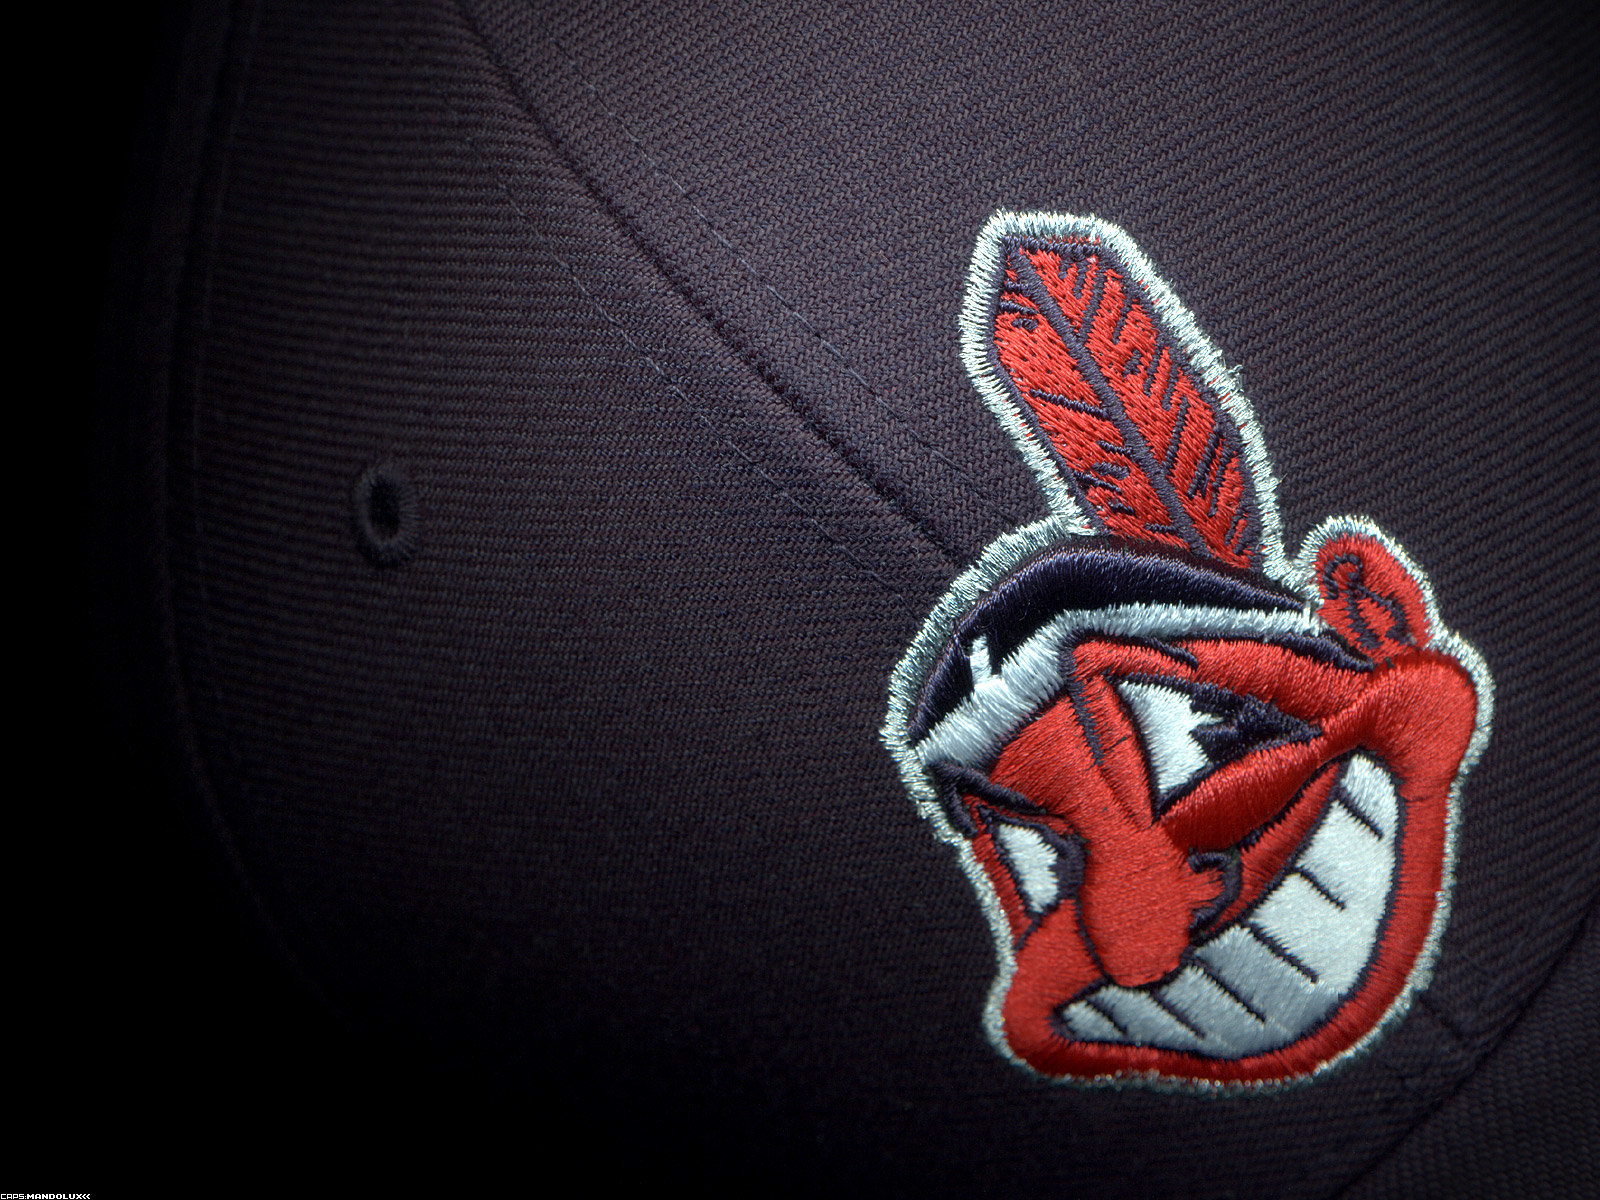 Awesome Cleveland Indians free wallpaper ID:372726 for hd 1600x1200 computer